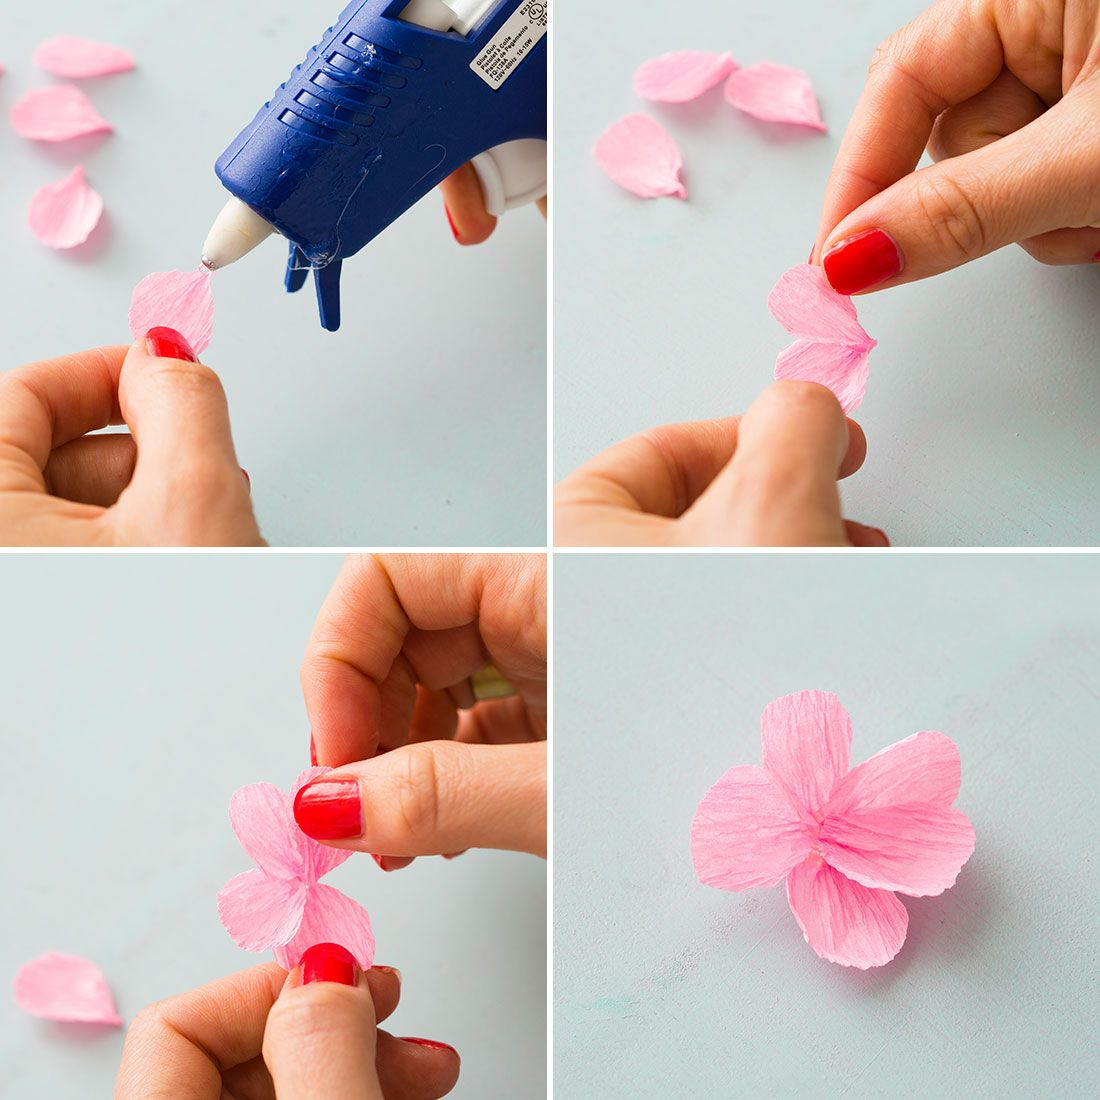 How to make a cherry blossom flower crown flower crowns cherry how to make a cherry blossom flower crown izmirmasajfo Choice Image